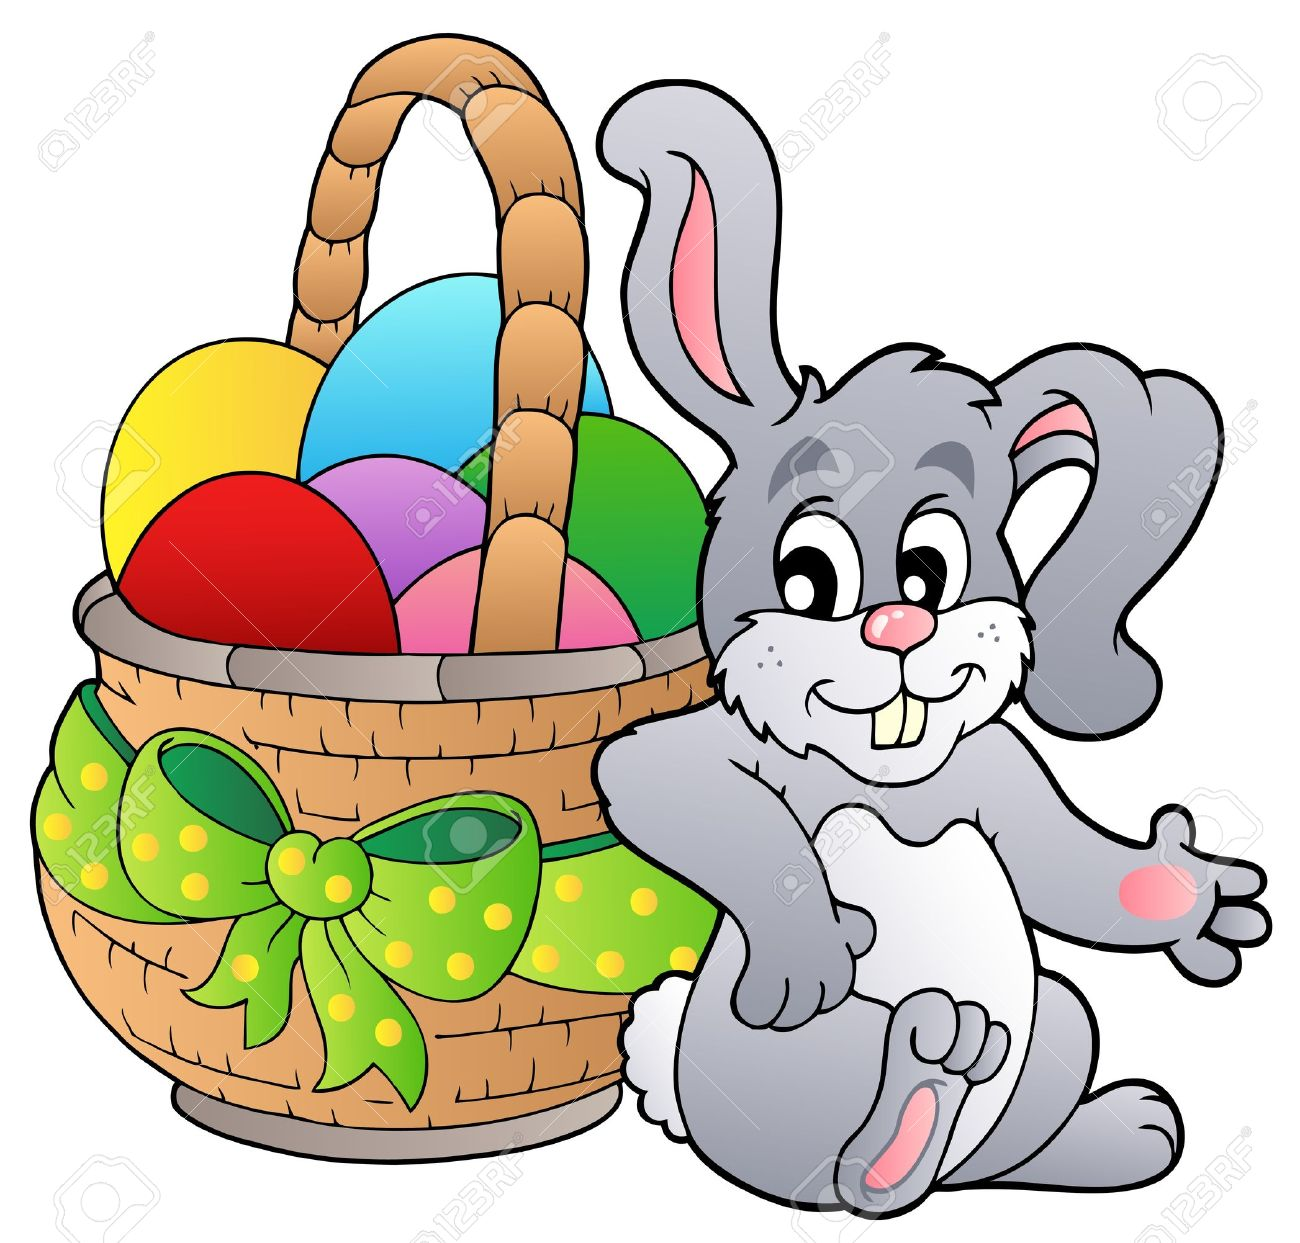 Basket With Easter Eggs And Bunny Royalty Free Cliparts, Vectors ... for Easter Eggs In A Basket With A Bunny  45ifm